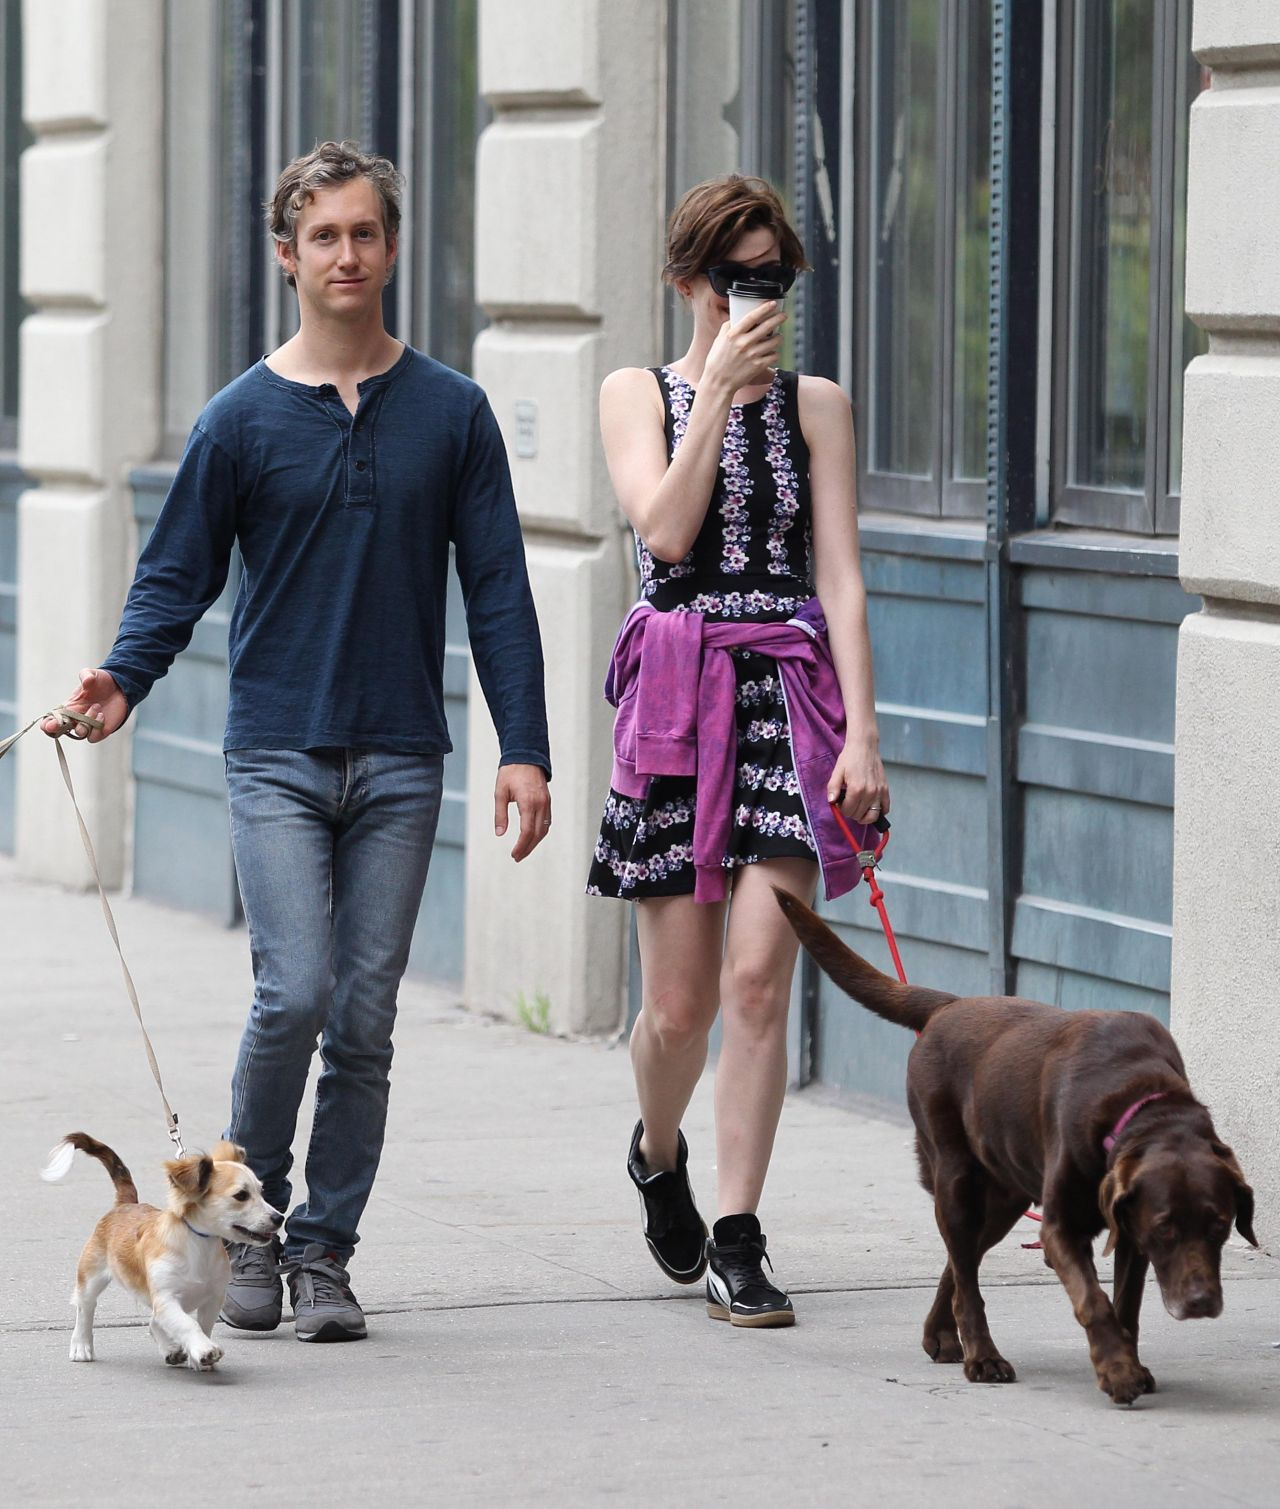 Anne Hathaway Spouse: Anne Hathaway With Her Husband